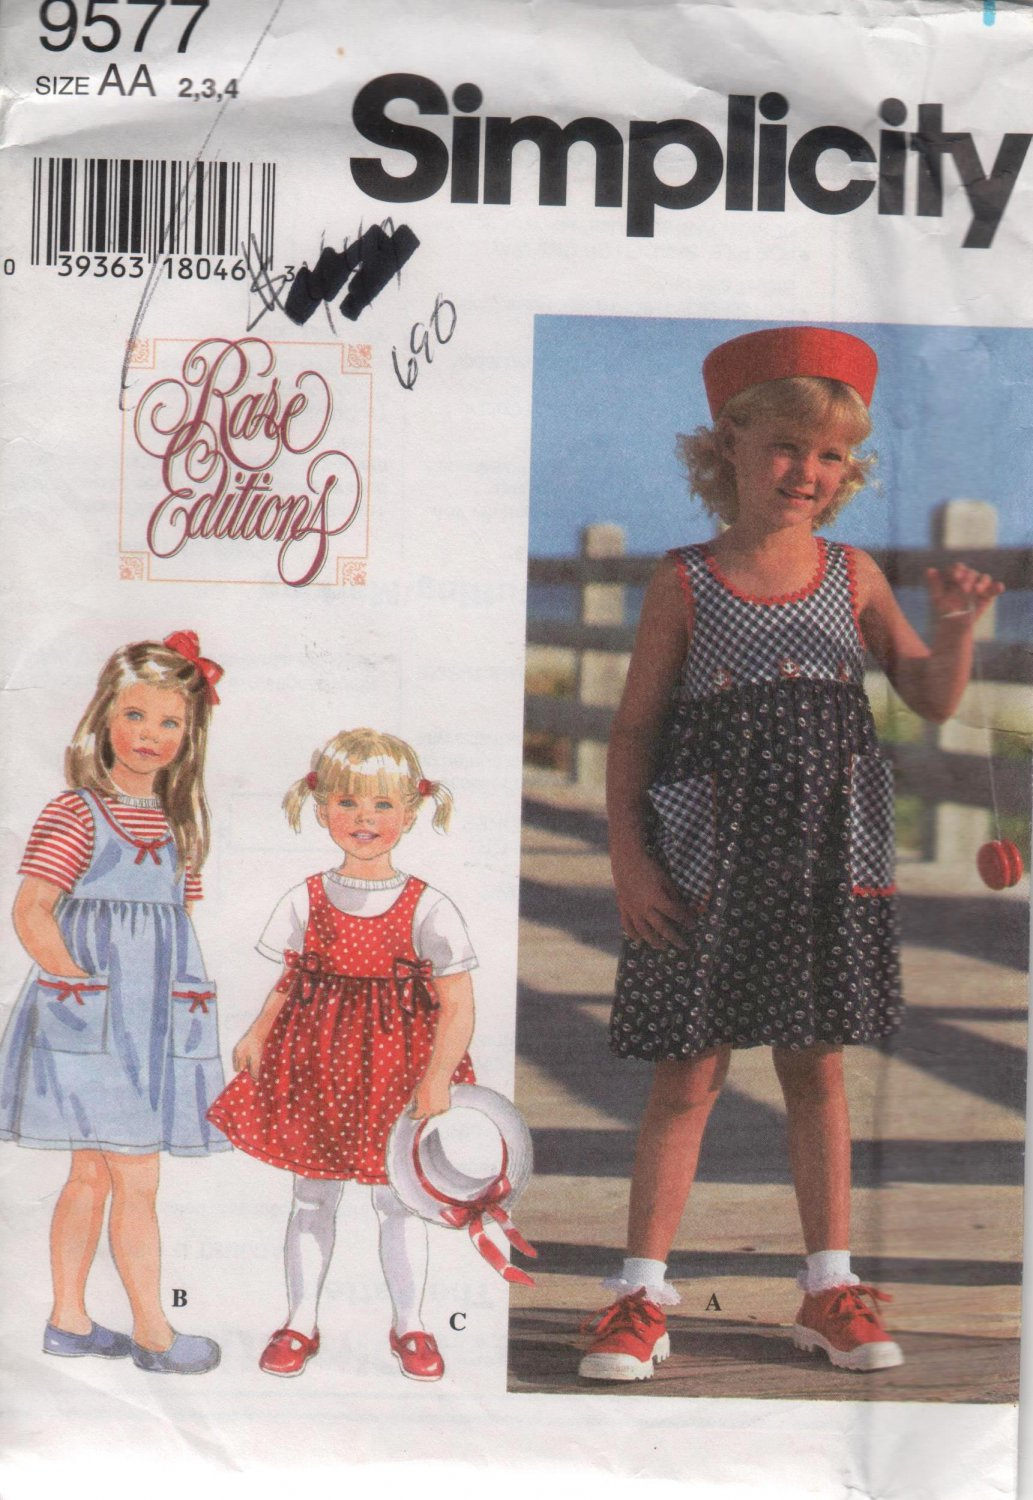 Simplicity 9577 Girls Sundress and Shirt Sewing Pattern  Sizes 2,3,4